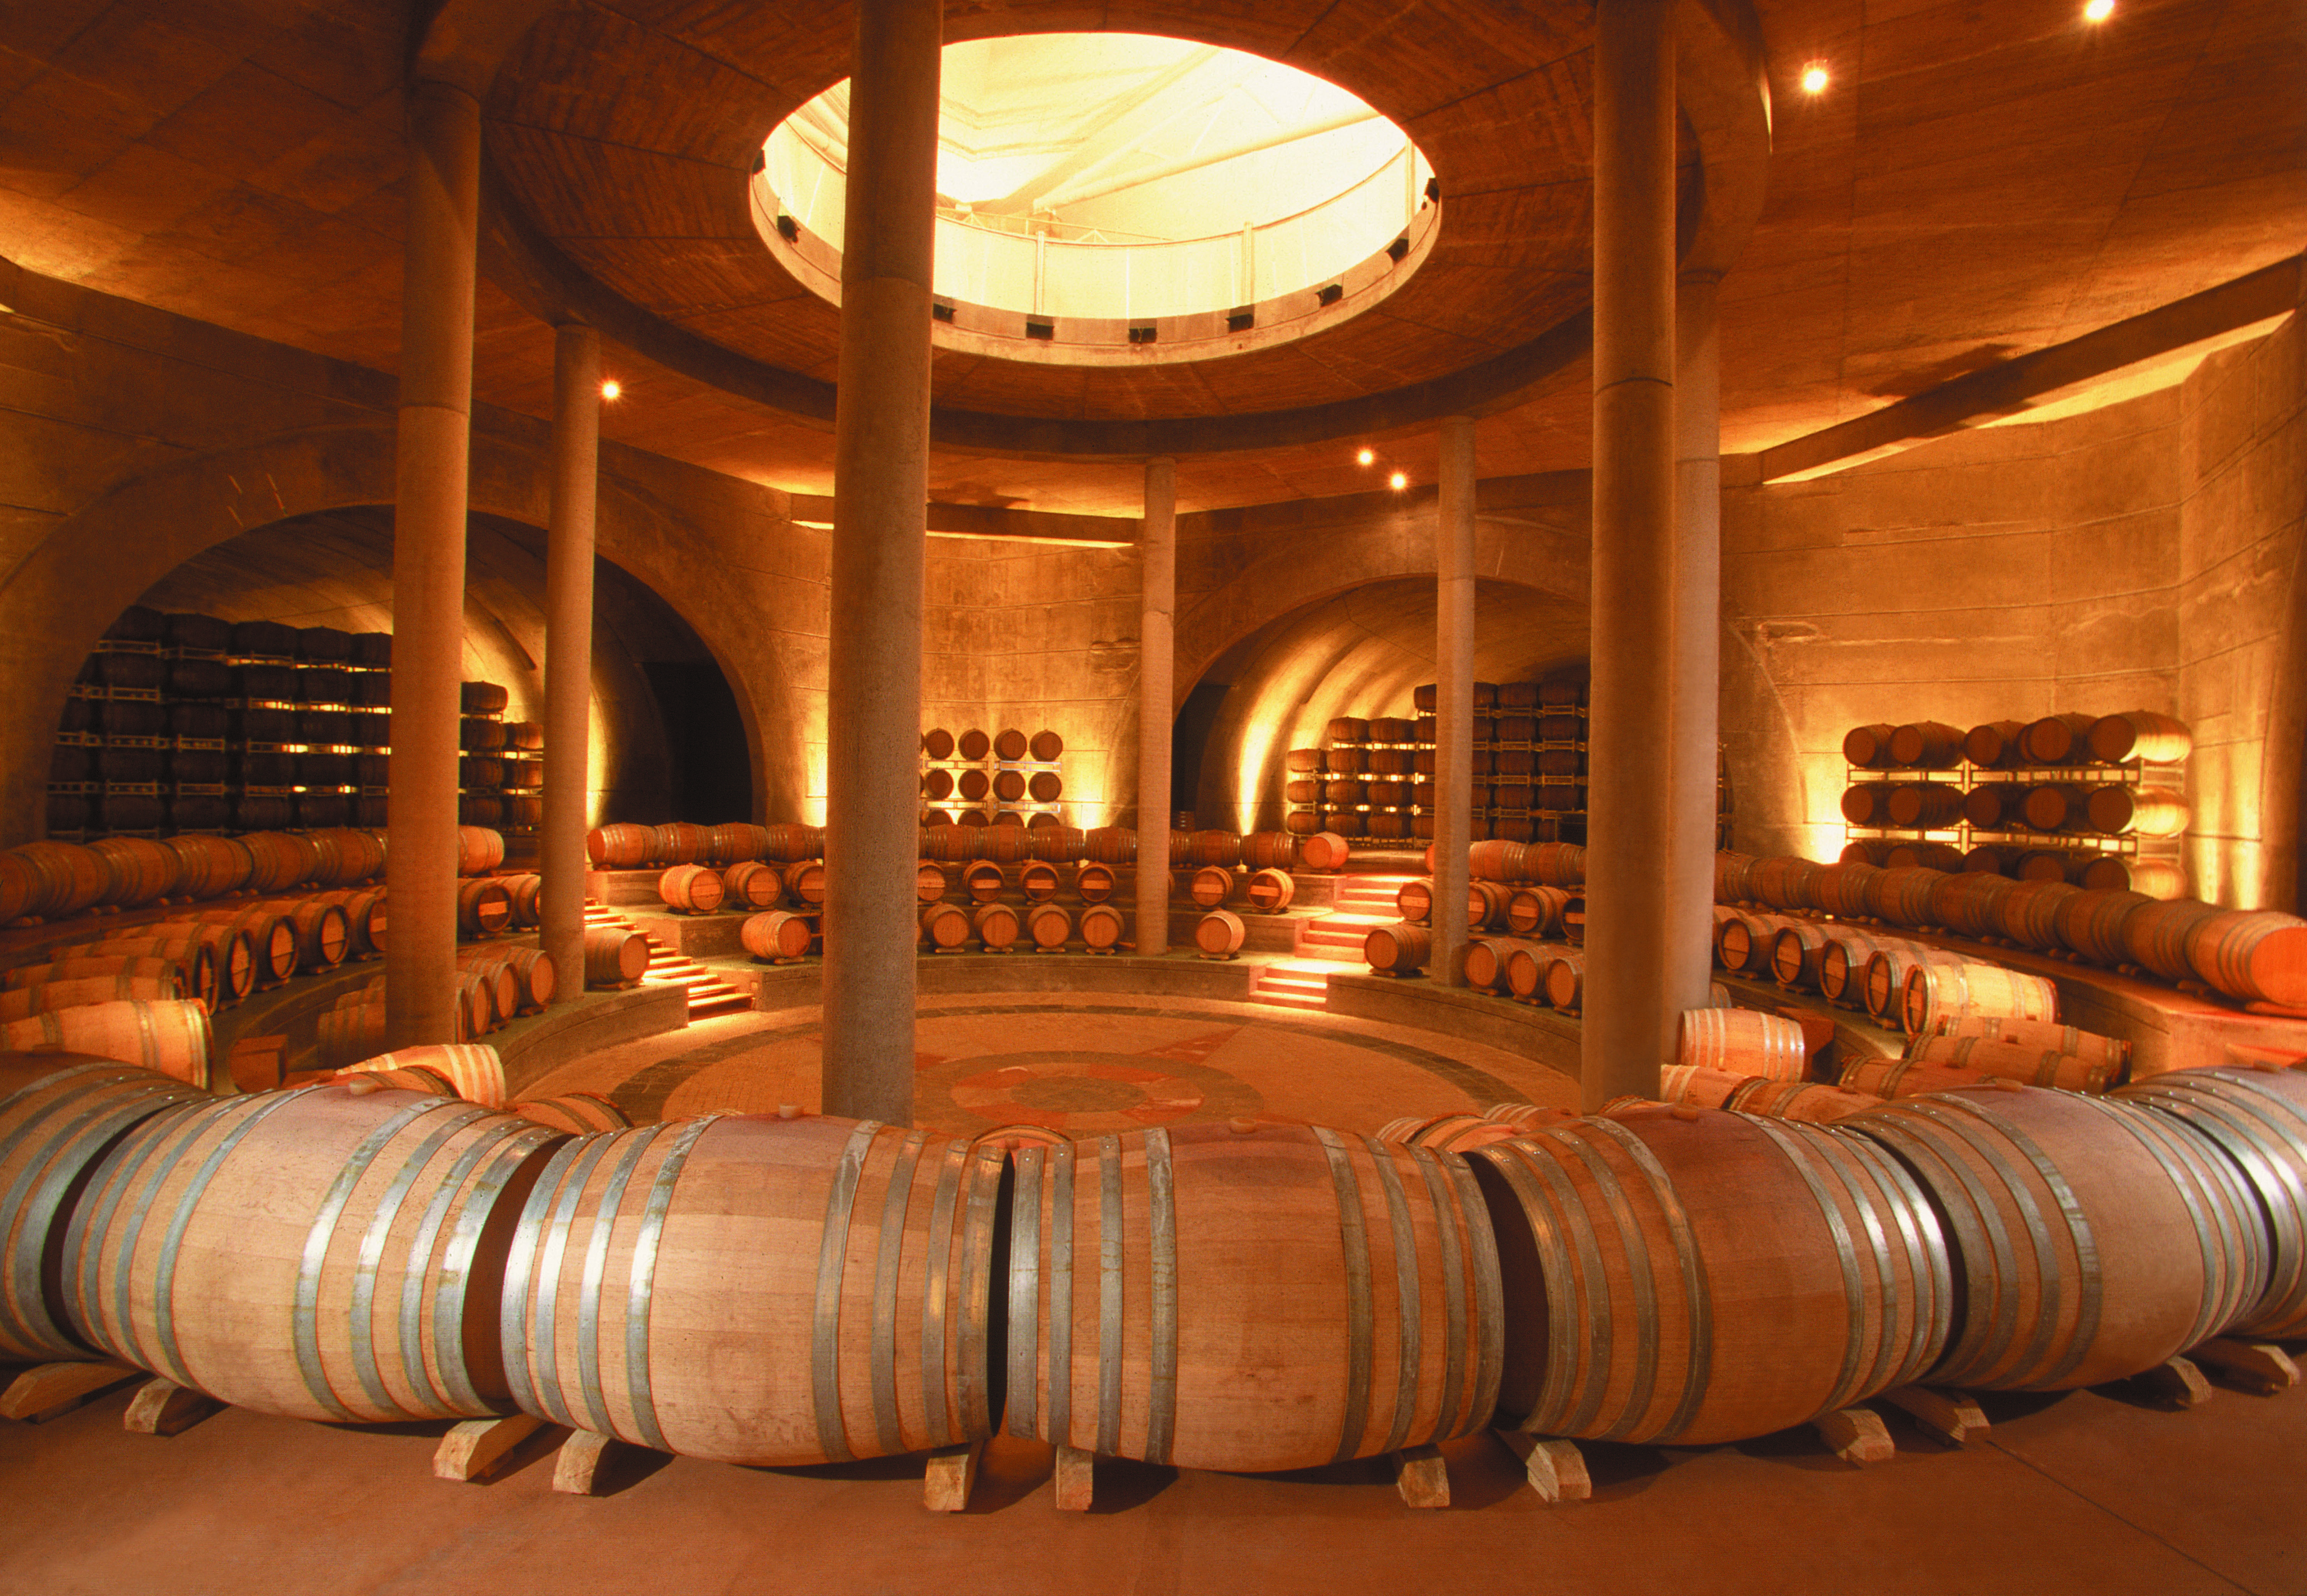 Full day Wine Tour with lunch